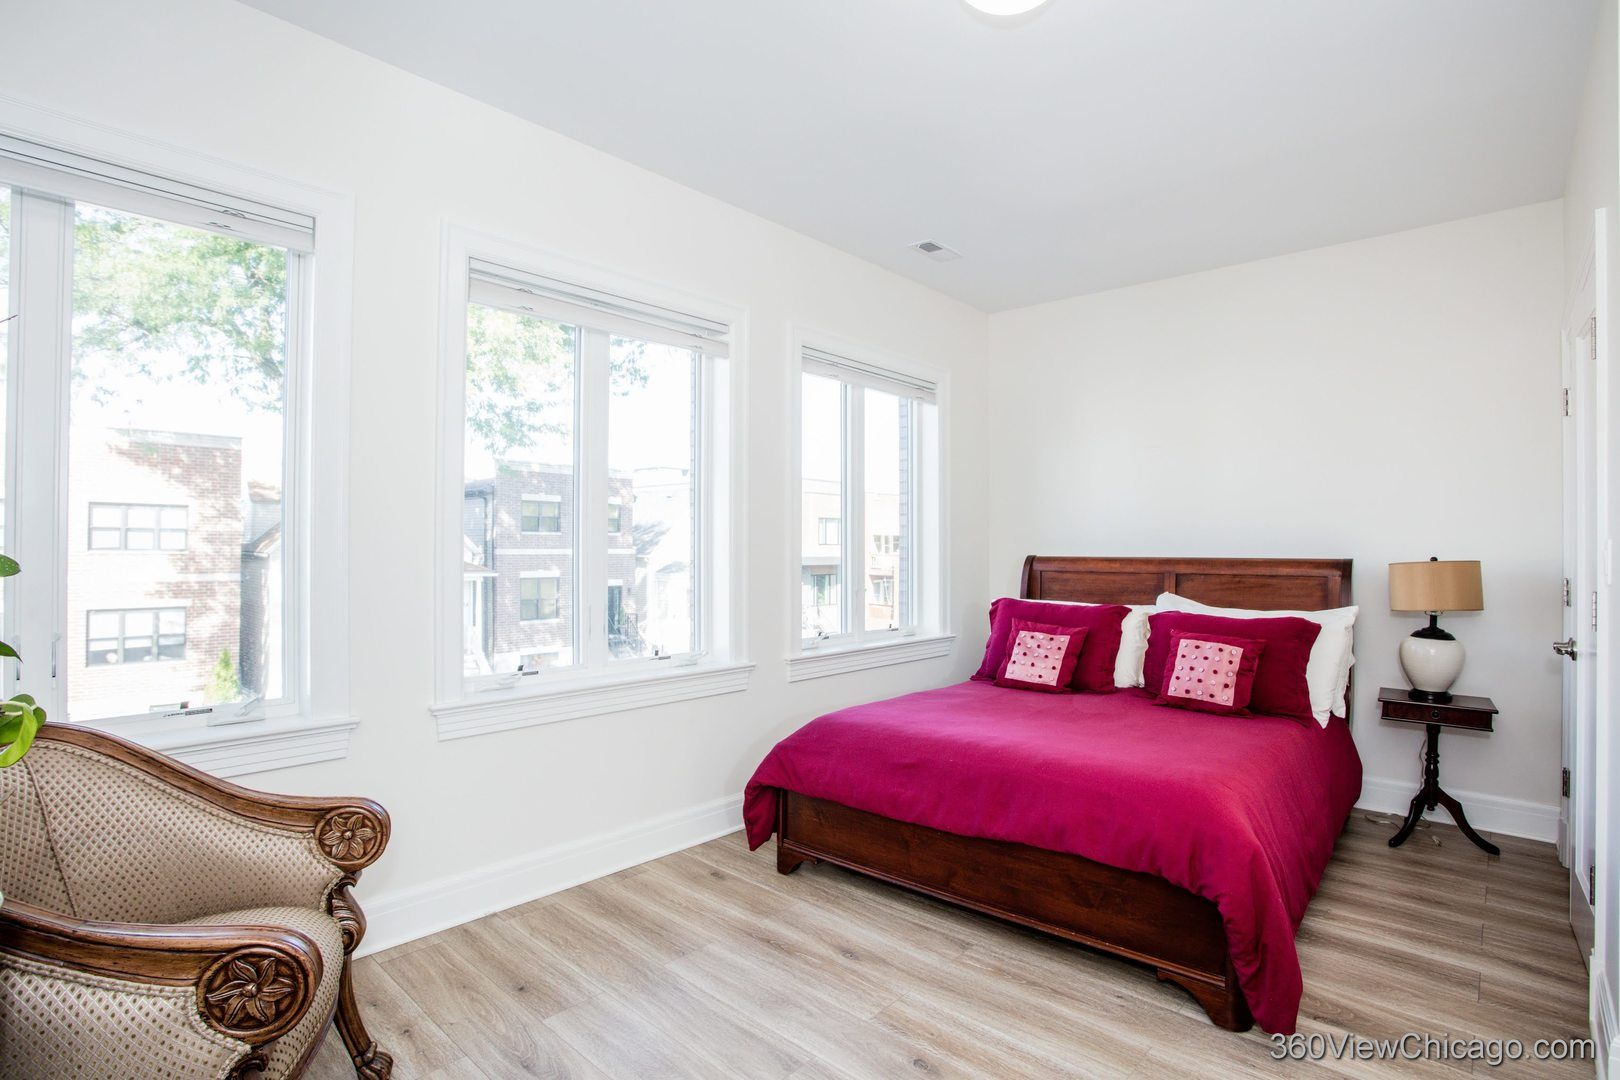 Photo 27: Photos: 1733 Troy Street in Chicago: CHI - Humboldt Park Residential for sale ()  : MLS®# 10911567